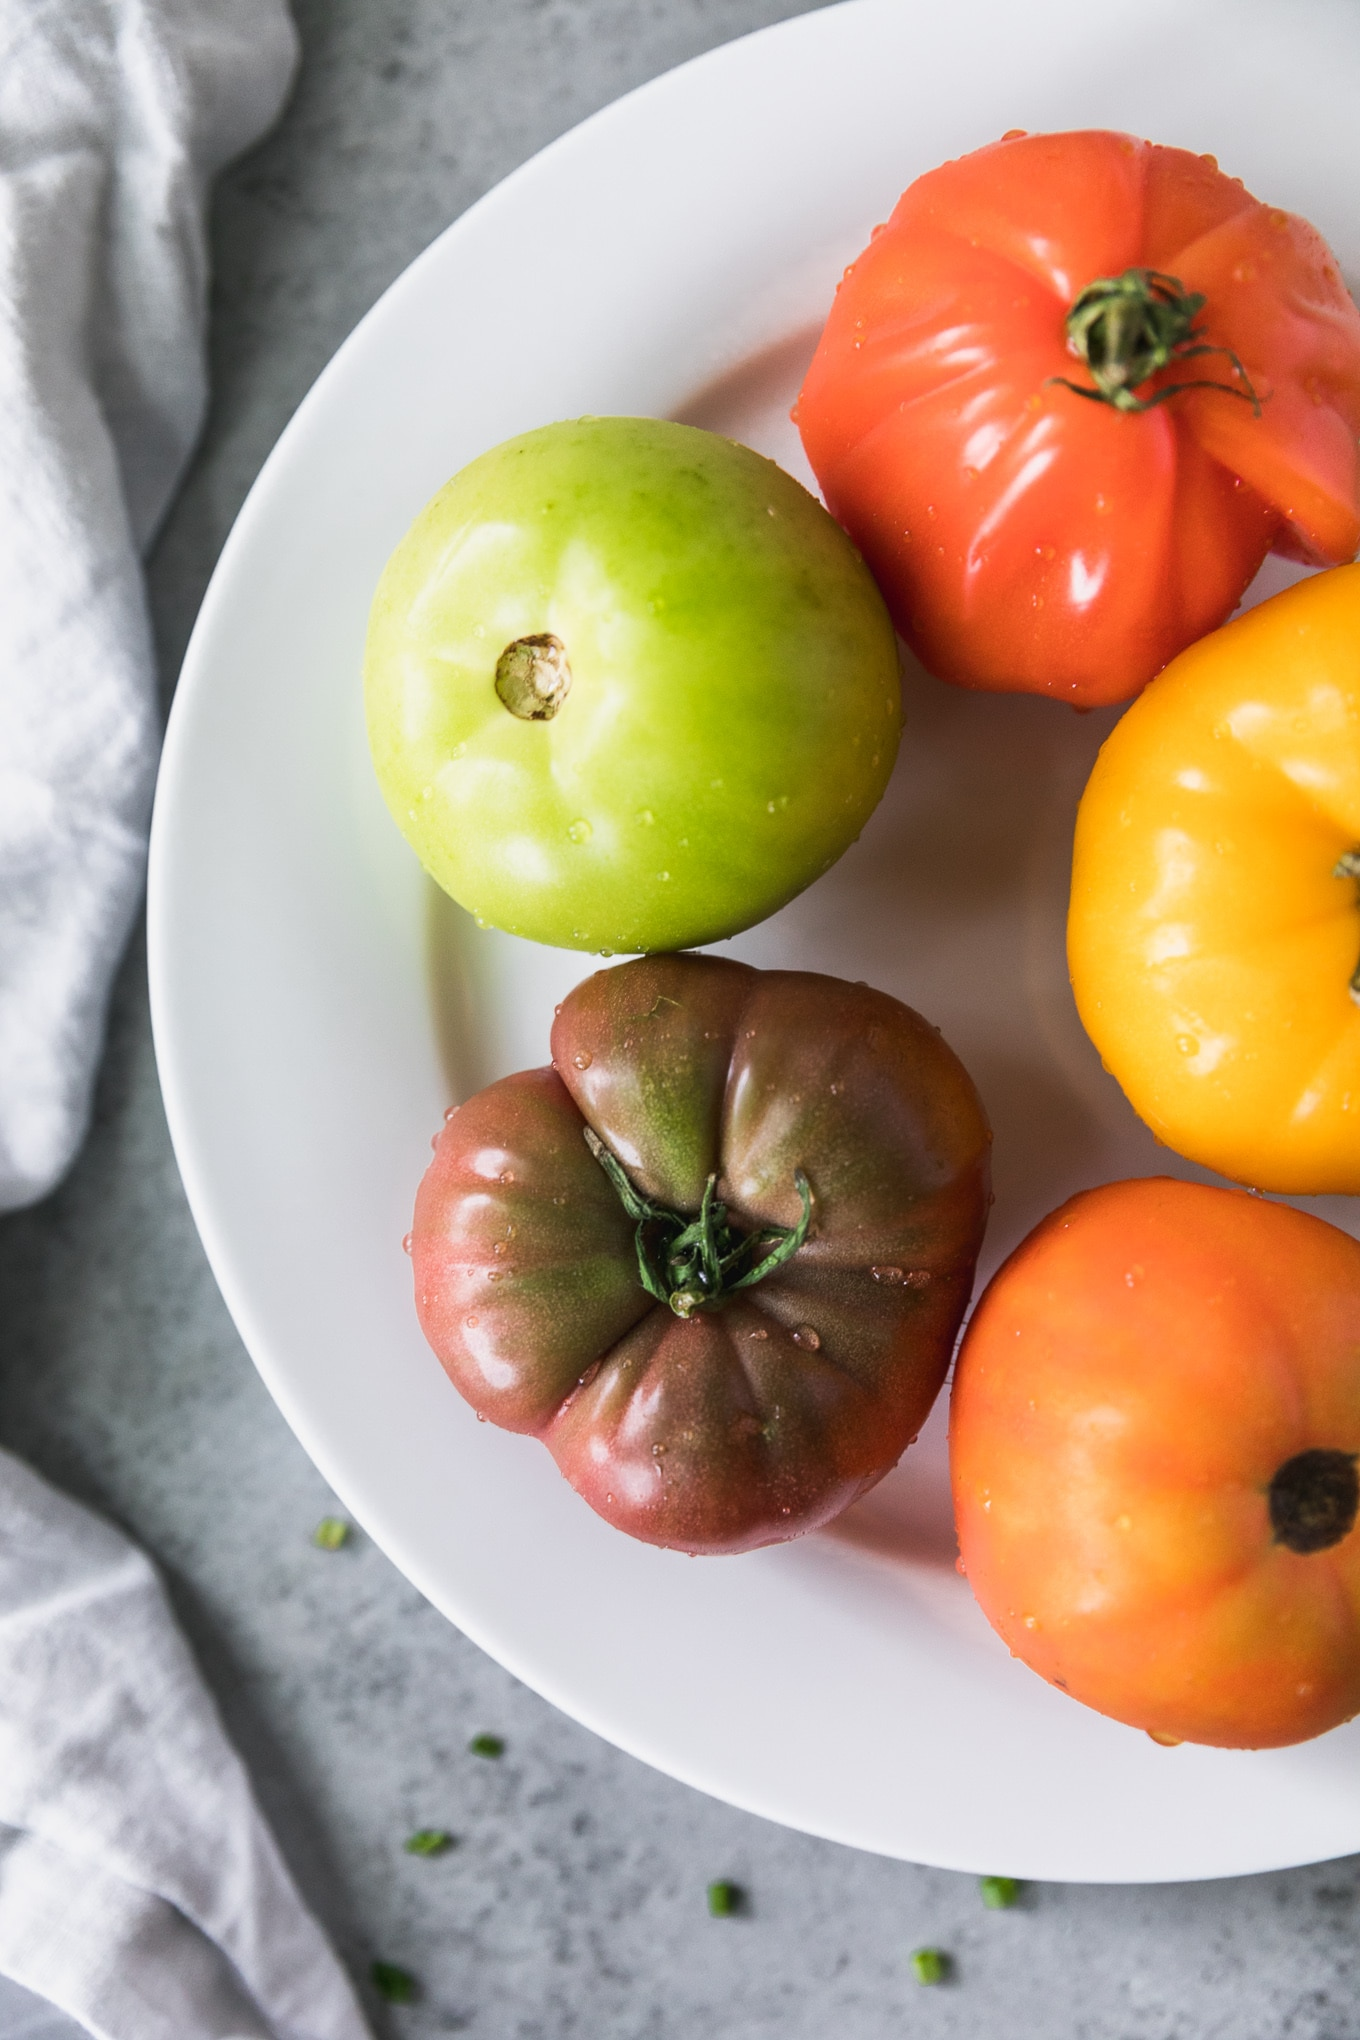 Overhead close up shot of a white plate with all different brightly colored heirloom tomatoes on it